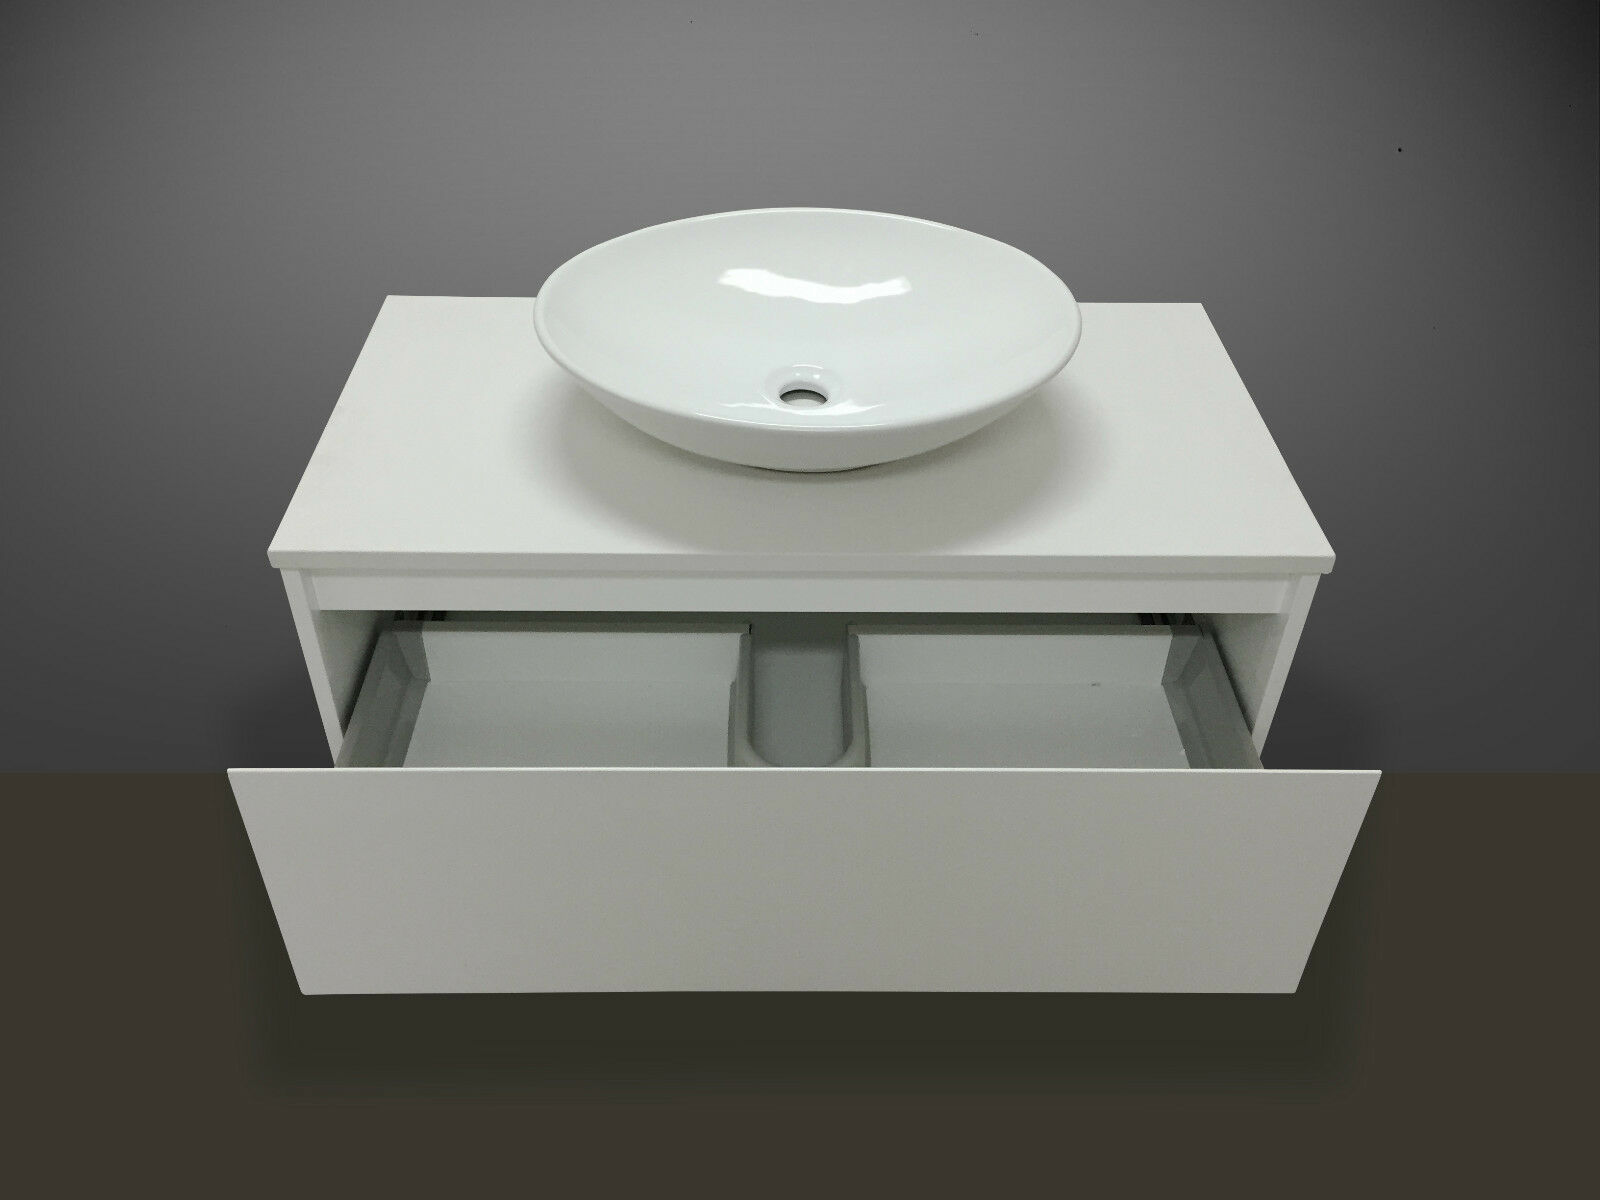 Bunnings Bathroom Vanity Bunnings Bathroom Vanity 750mm